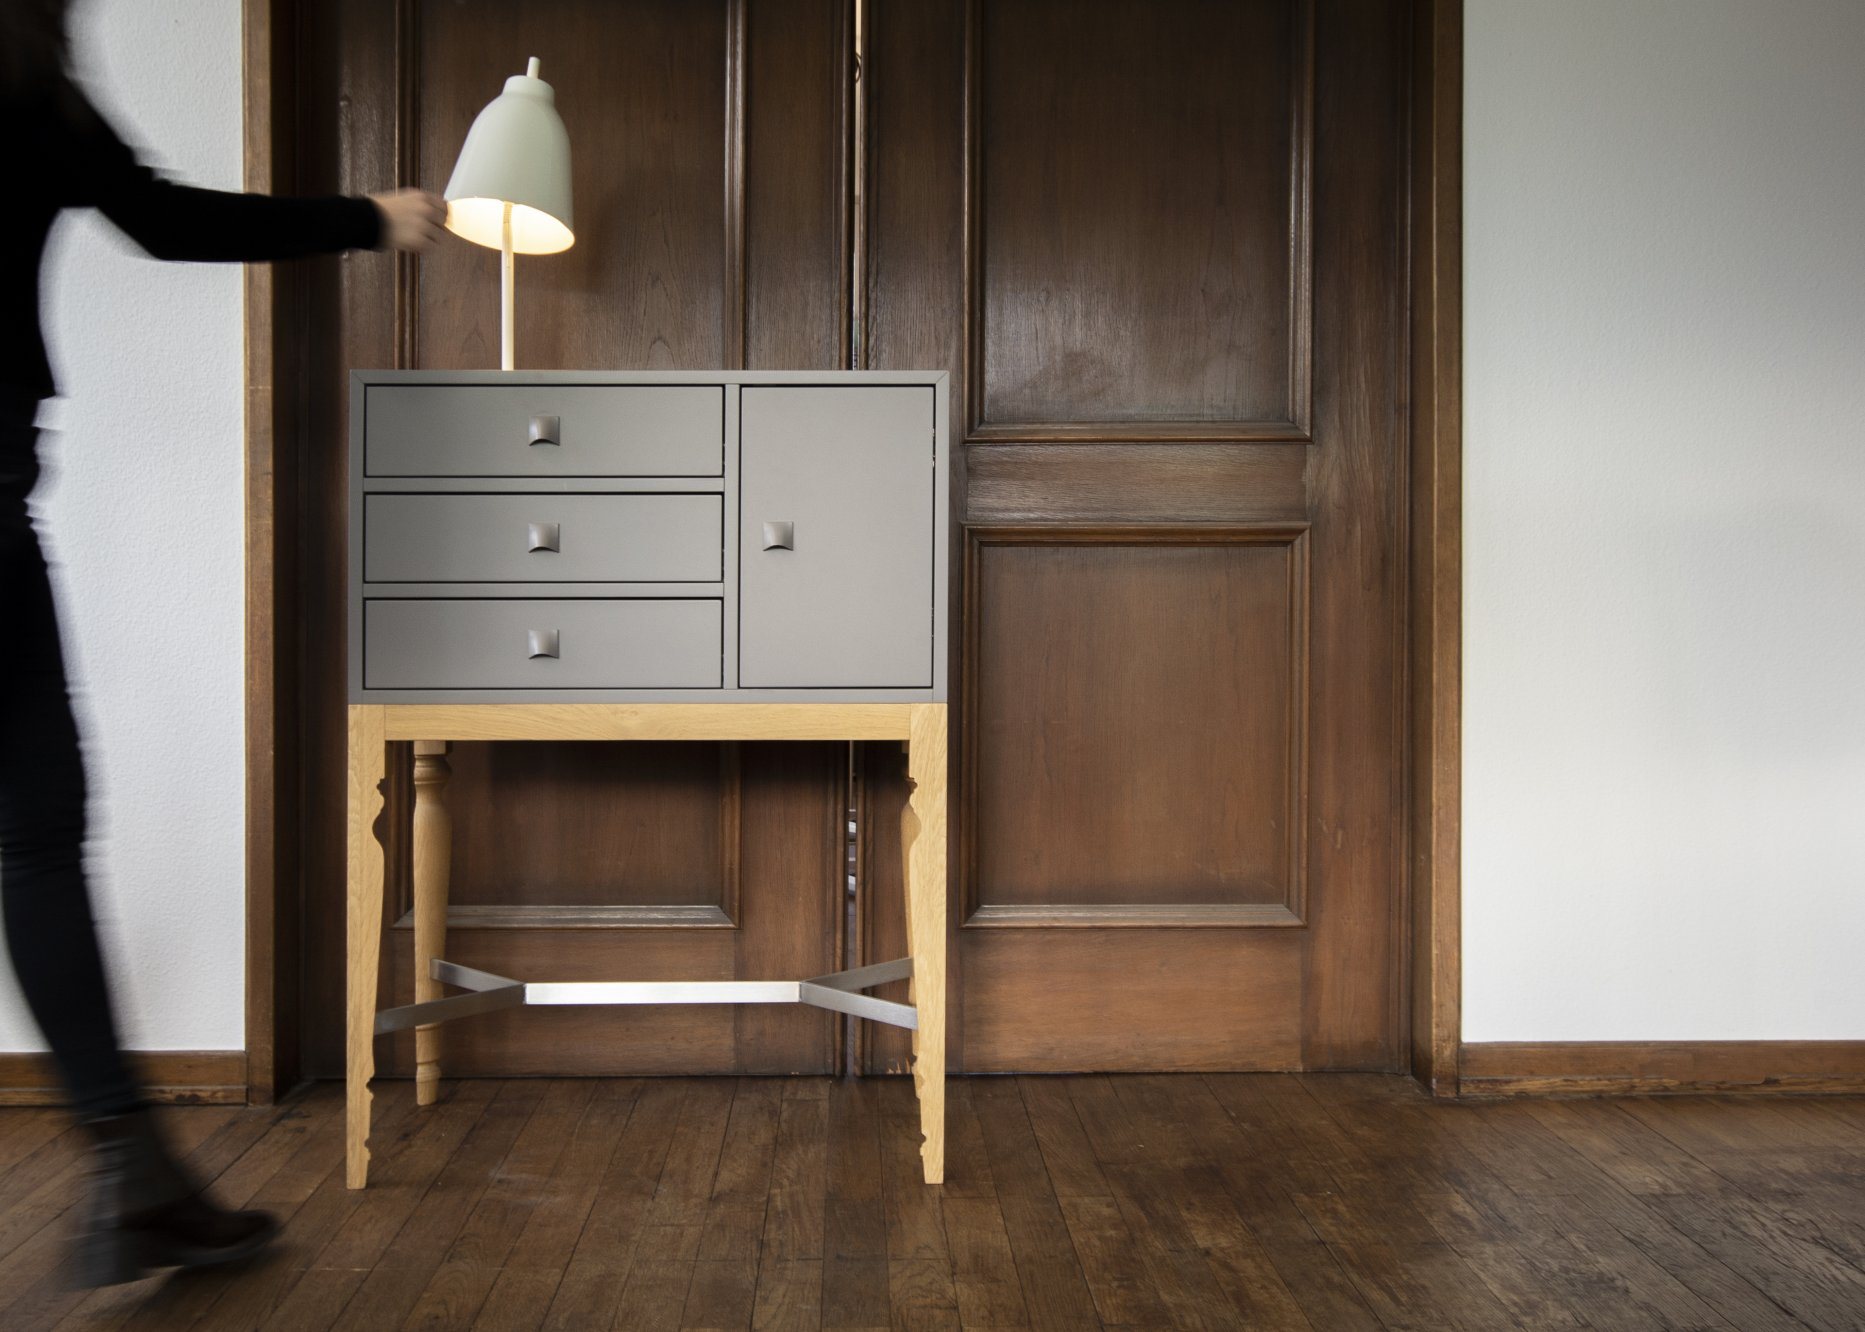 Lola, Sideboard – Produktdesign – Bogen Design, Innenarchitektur Intended For Best And Newest Lola Sideboards (View 14 of 20)